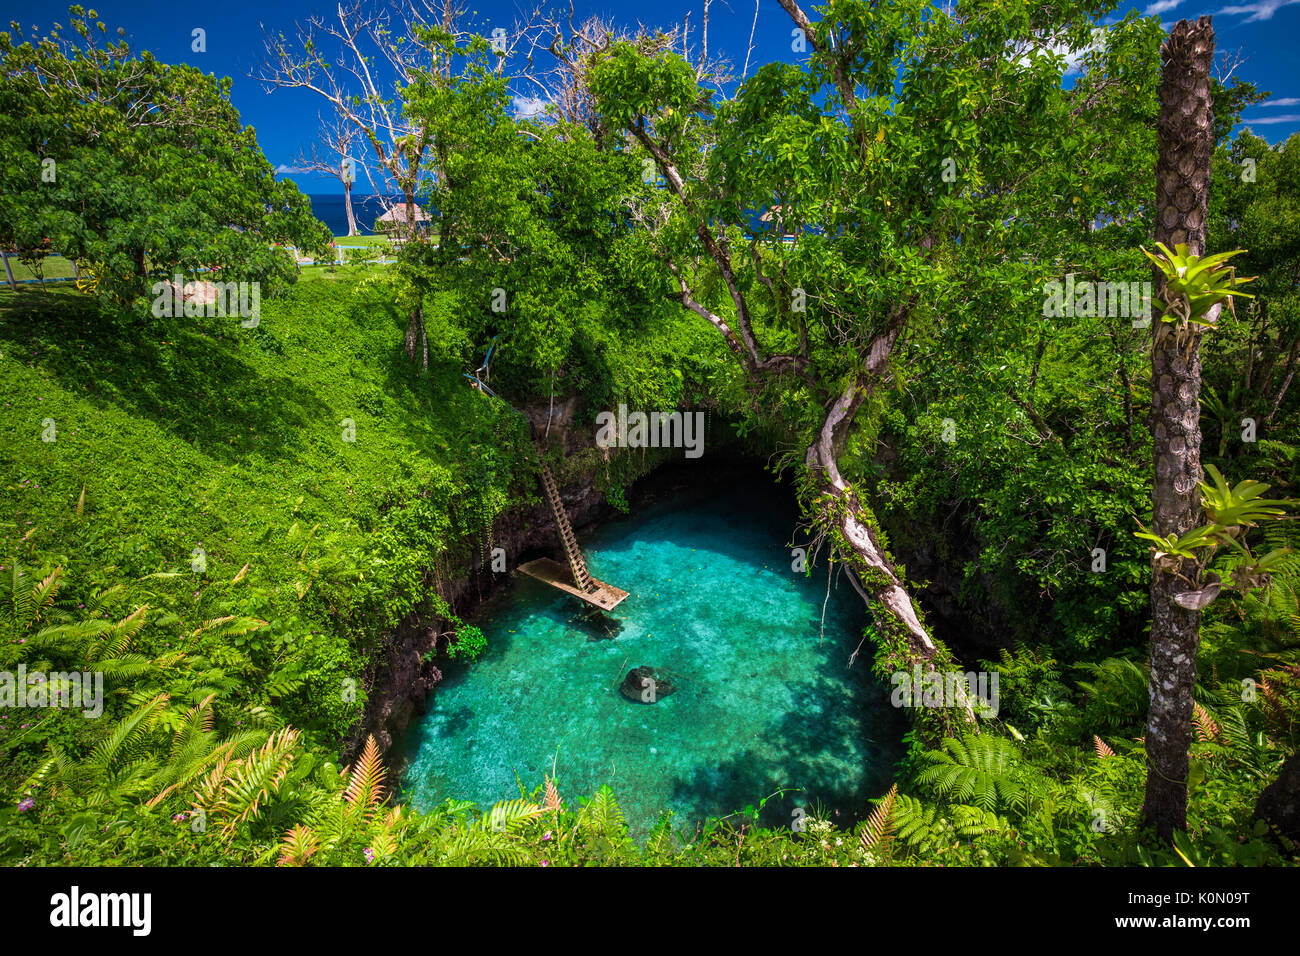 To Sua ocean trench - famous swimming hole, Upolu, Samoa Islands, South Pacific - Stock Image